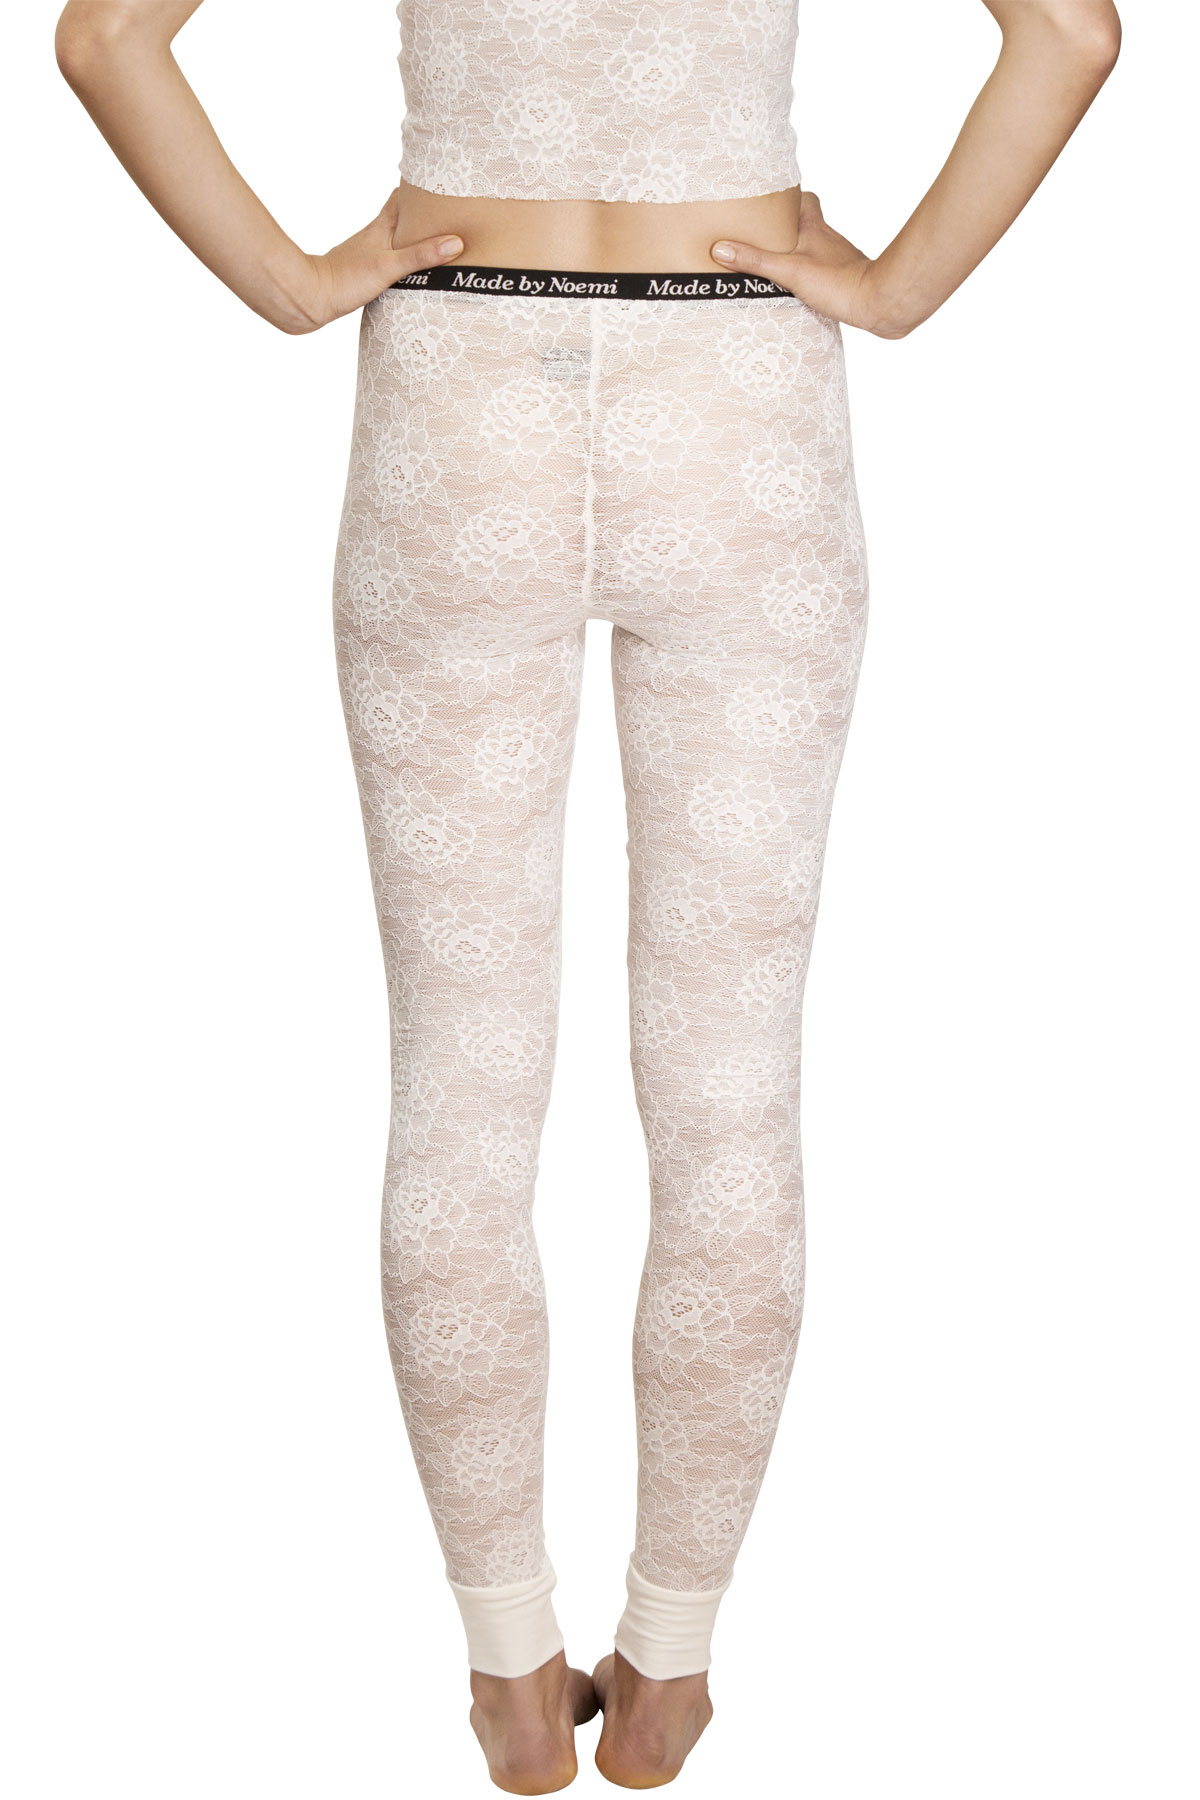 Online shopping for popular & hot White Lace Leggings from Women's Clothing & Accessories, Leggings, Mother & Kids, Pants and more related White Lace Leggings like White Lace Leggings. Discover over of the best Selection White Lace Leggings on imaginary-7mbh1j.cf Besides, various selected White Lace Leggings brands are prepared for you to choose.